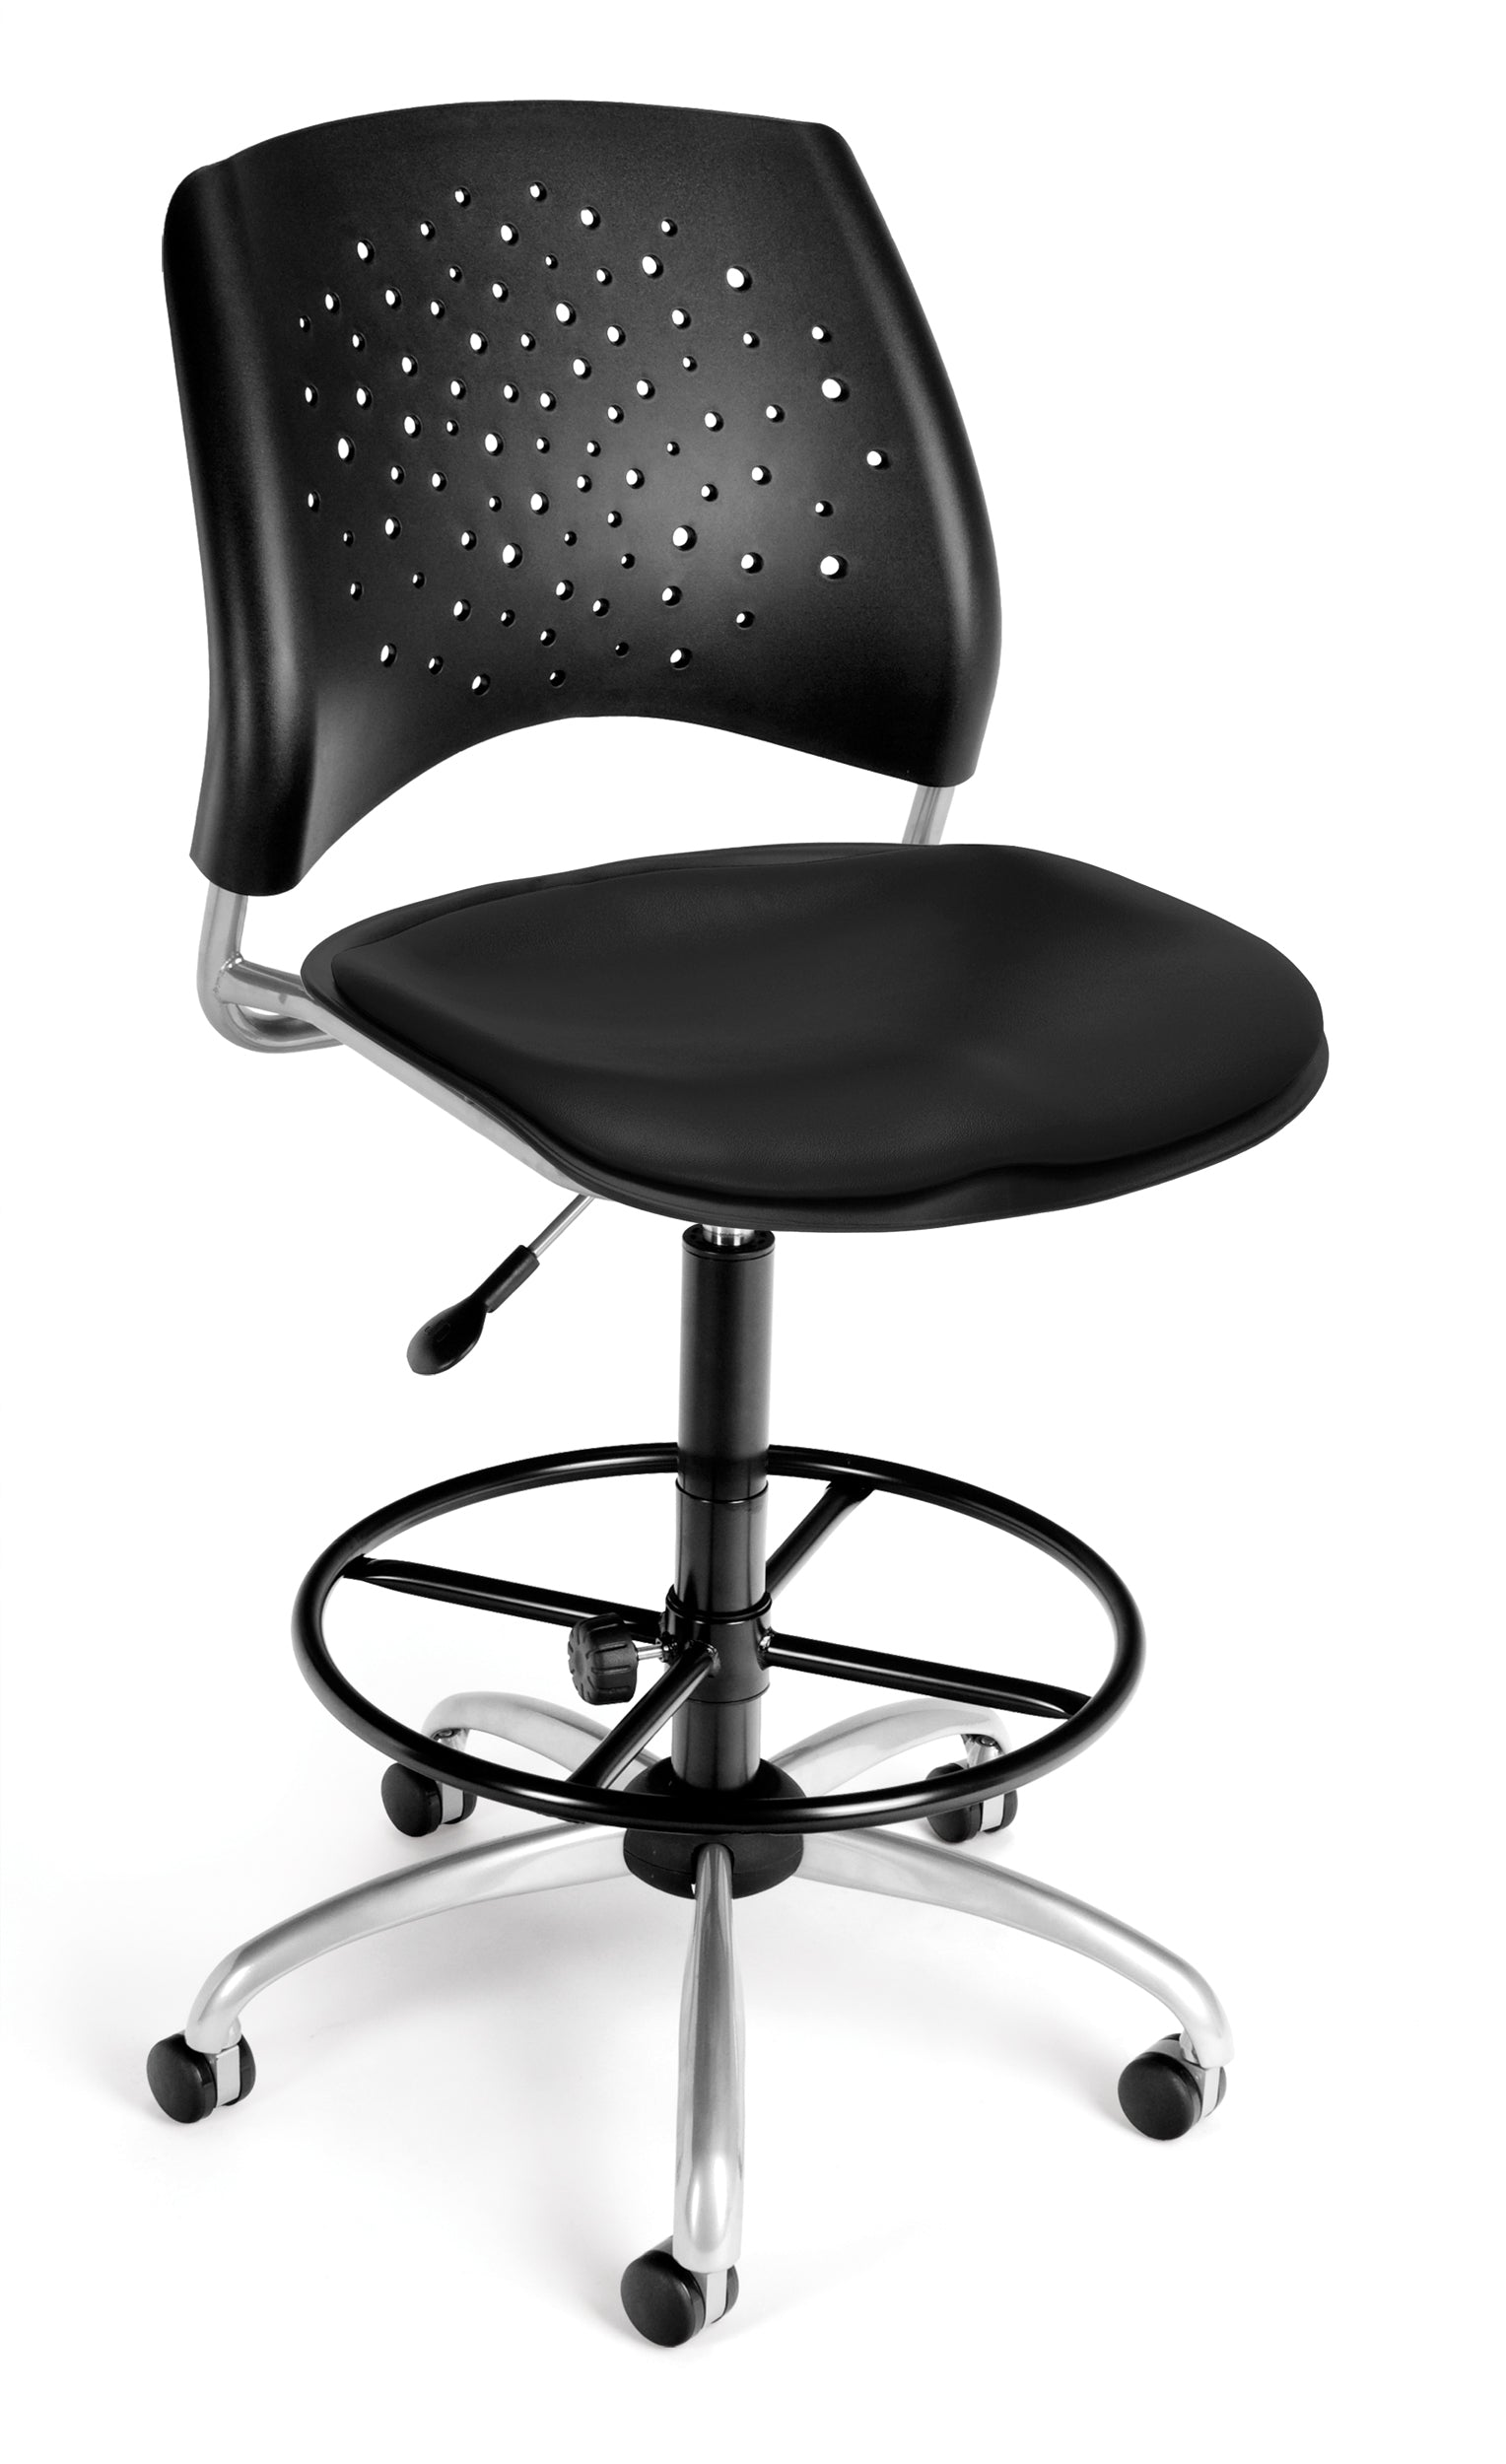 Model 326-VAM-DK Stars Series Armless Vinyl Swivel Drafting Kit Chair